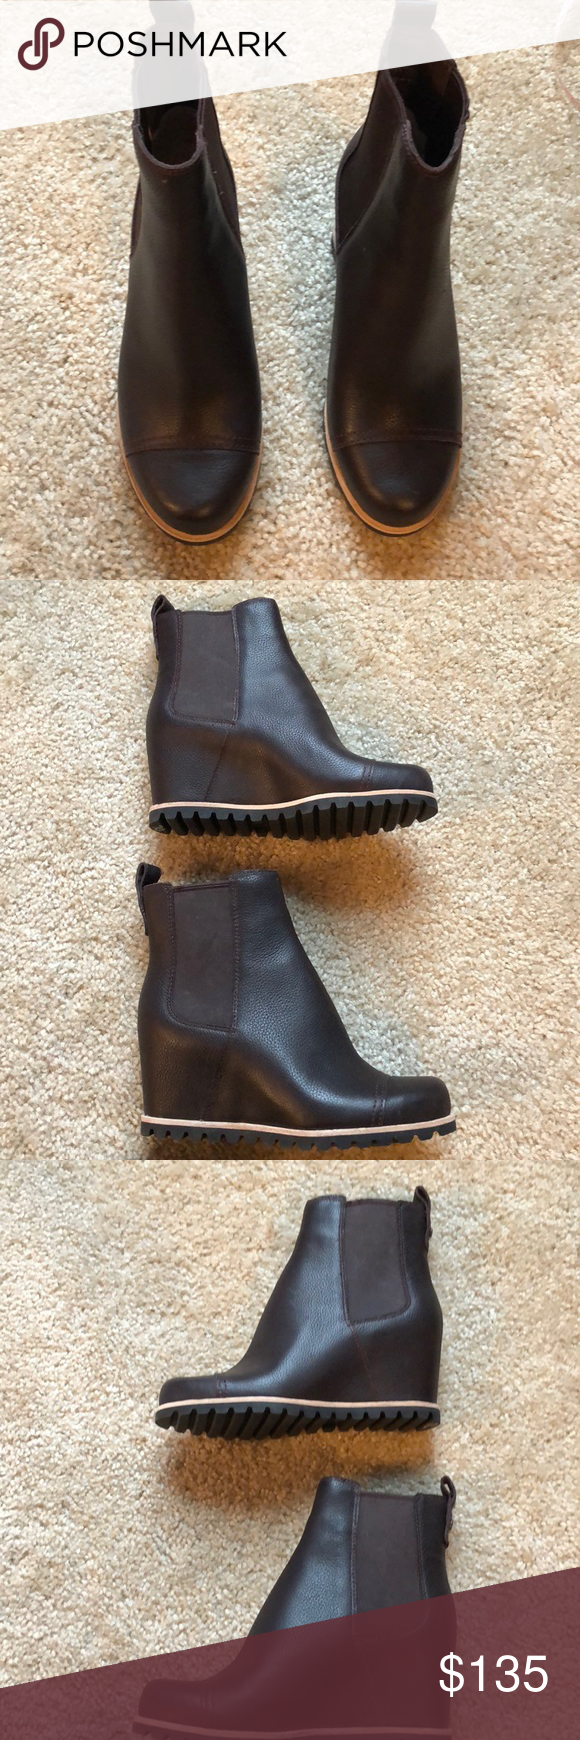 391cbbe787c New! Ugg Pax wedge bootie -Stout 5.5 New without box. Ugg Pax wedge ...